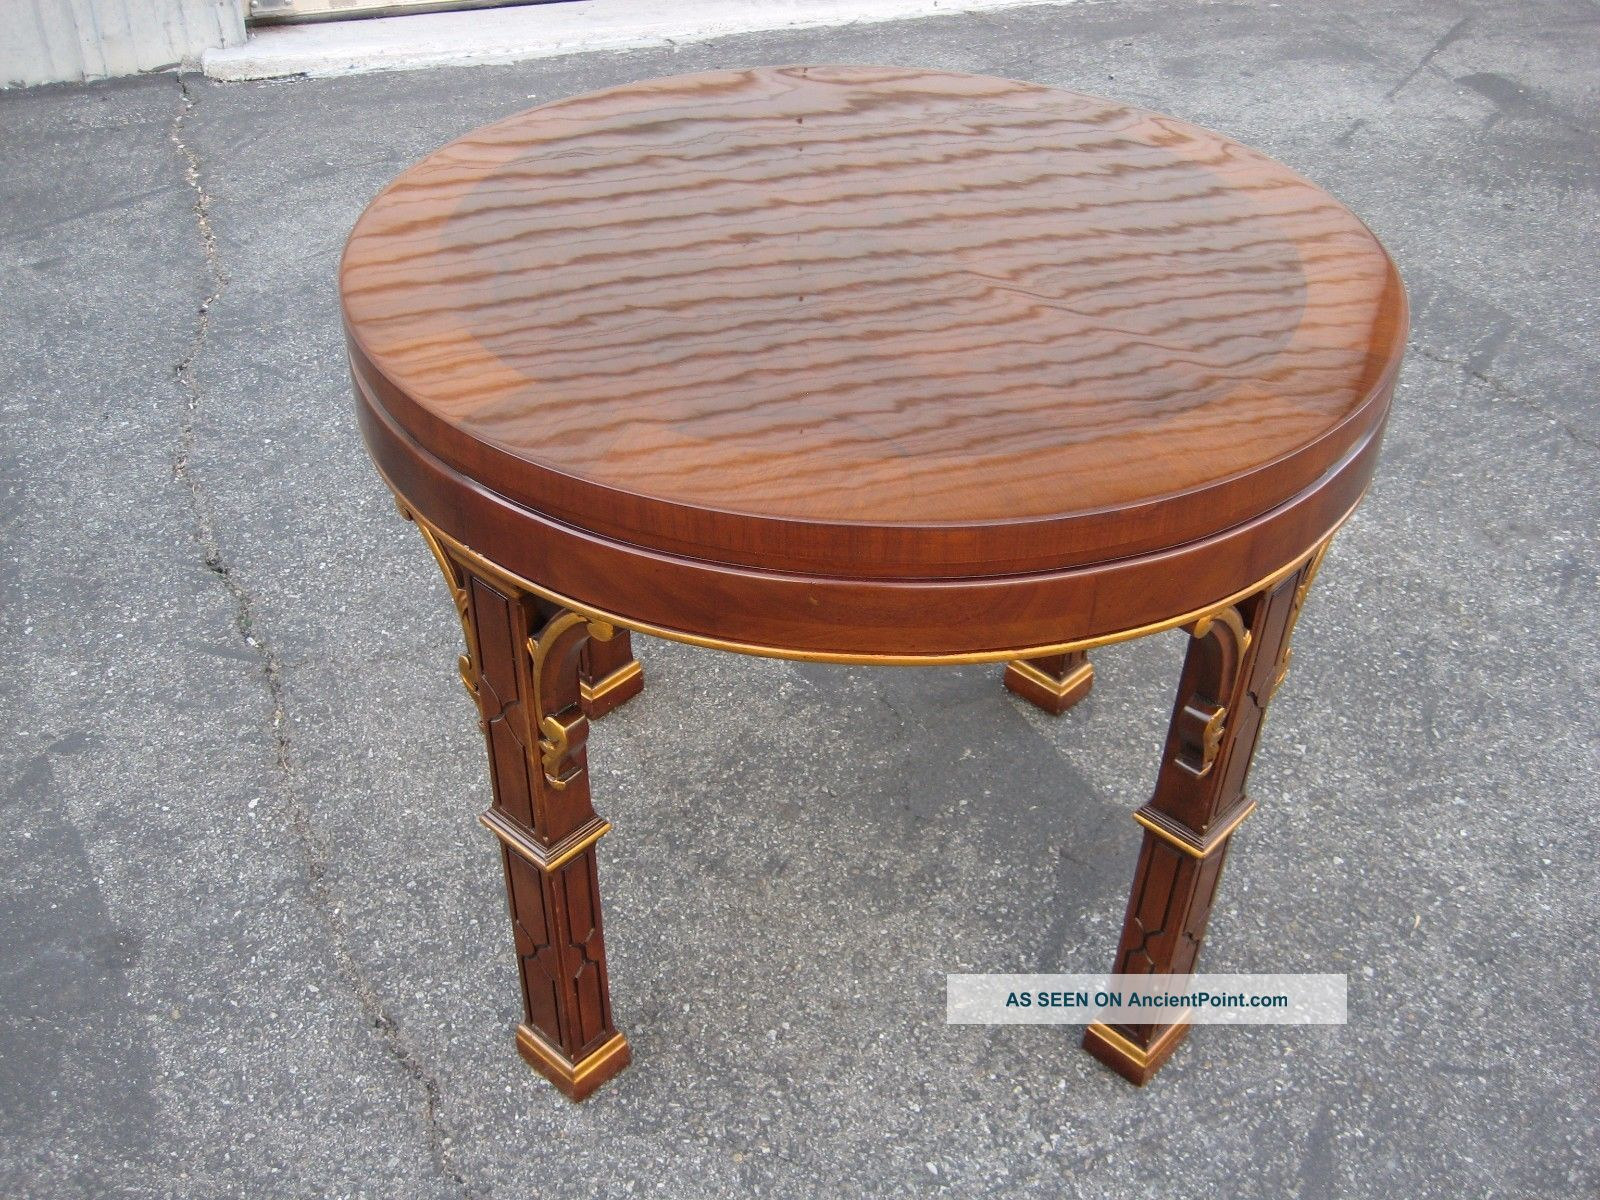 Karges Round Side Table Other Antique Furniture photo